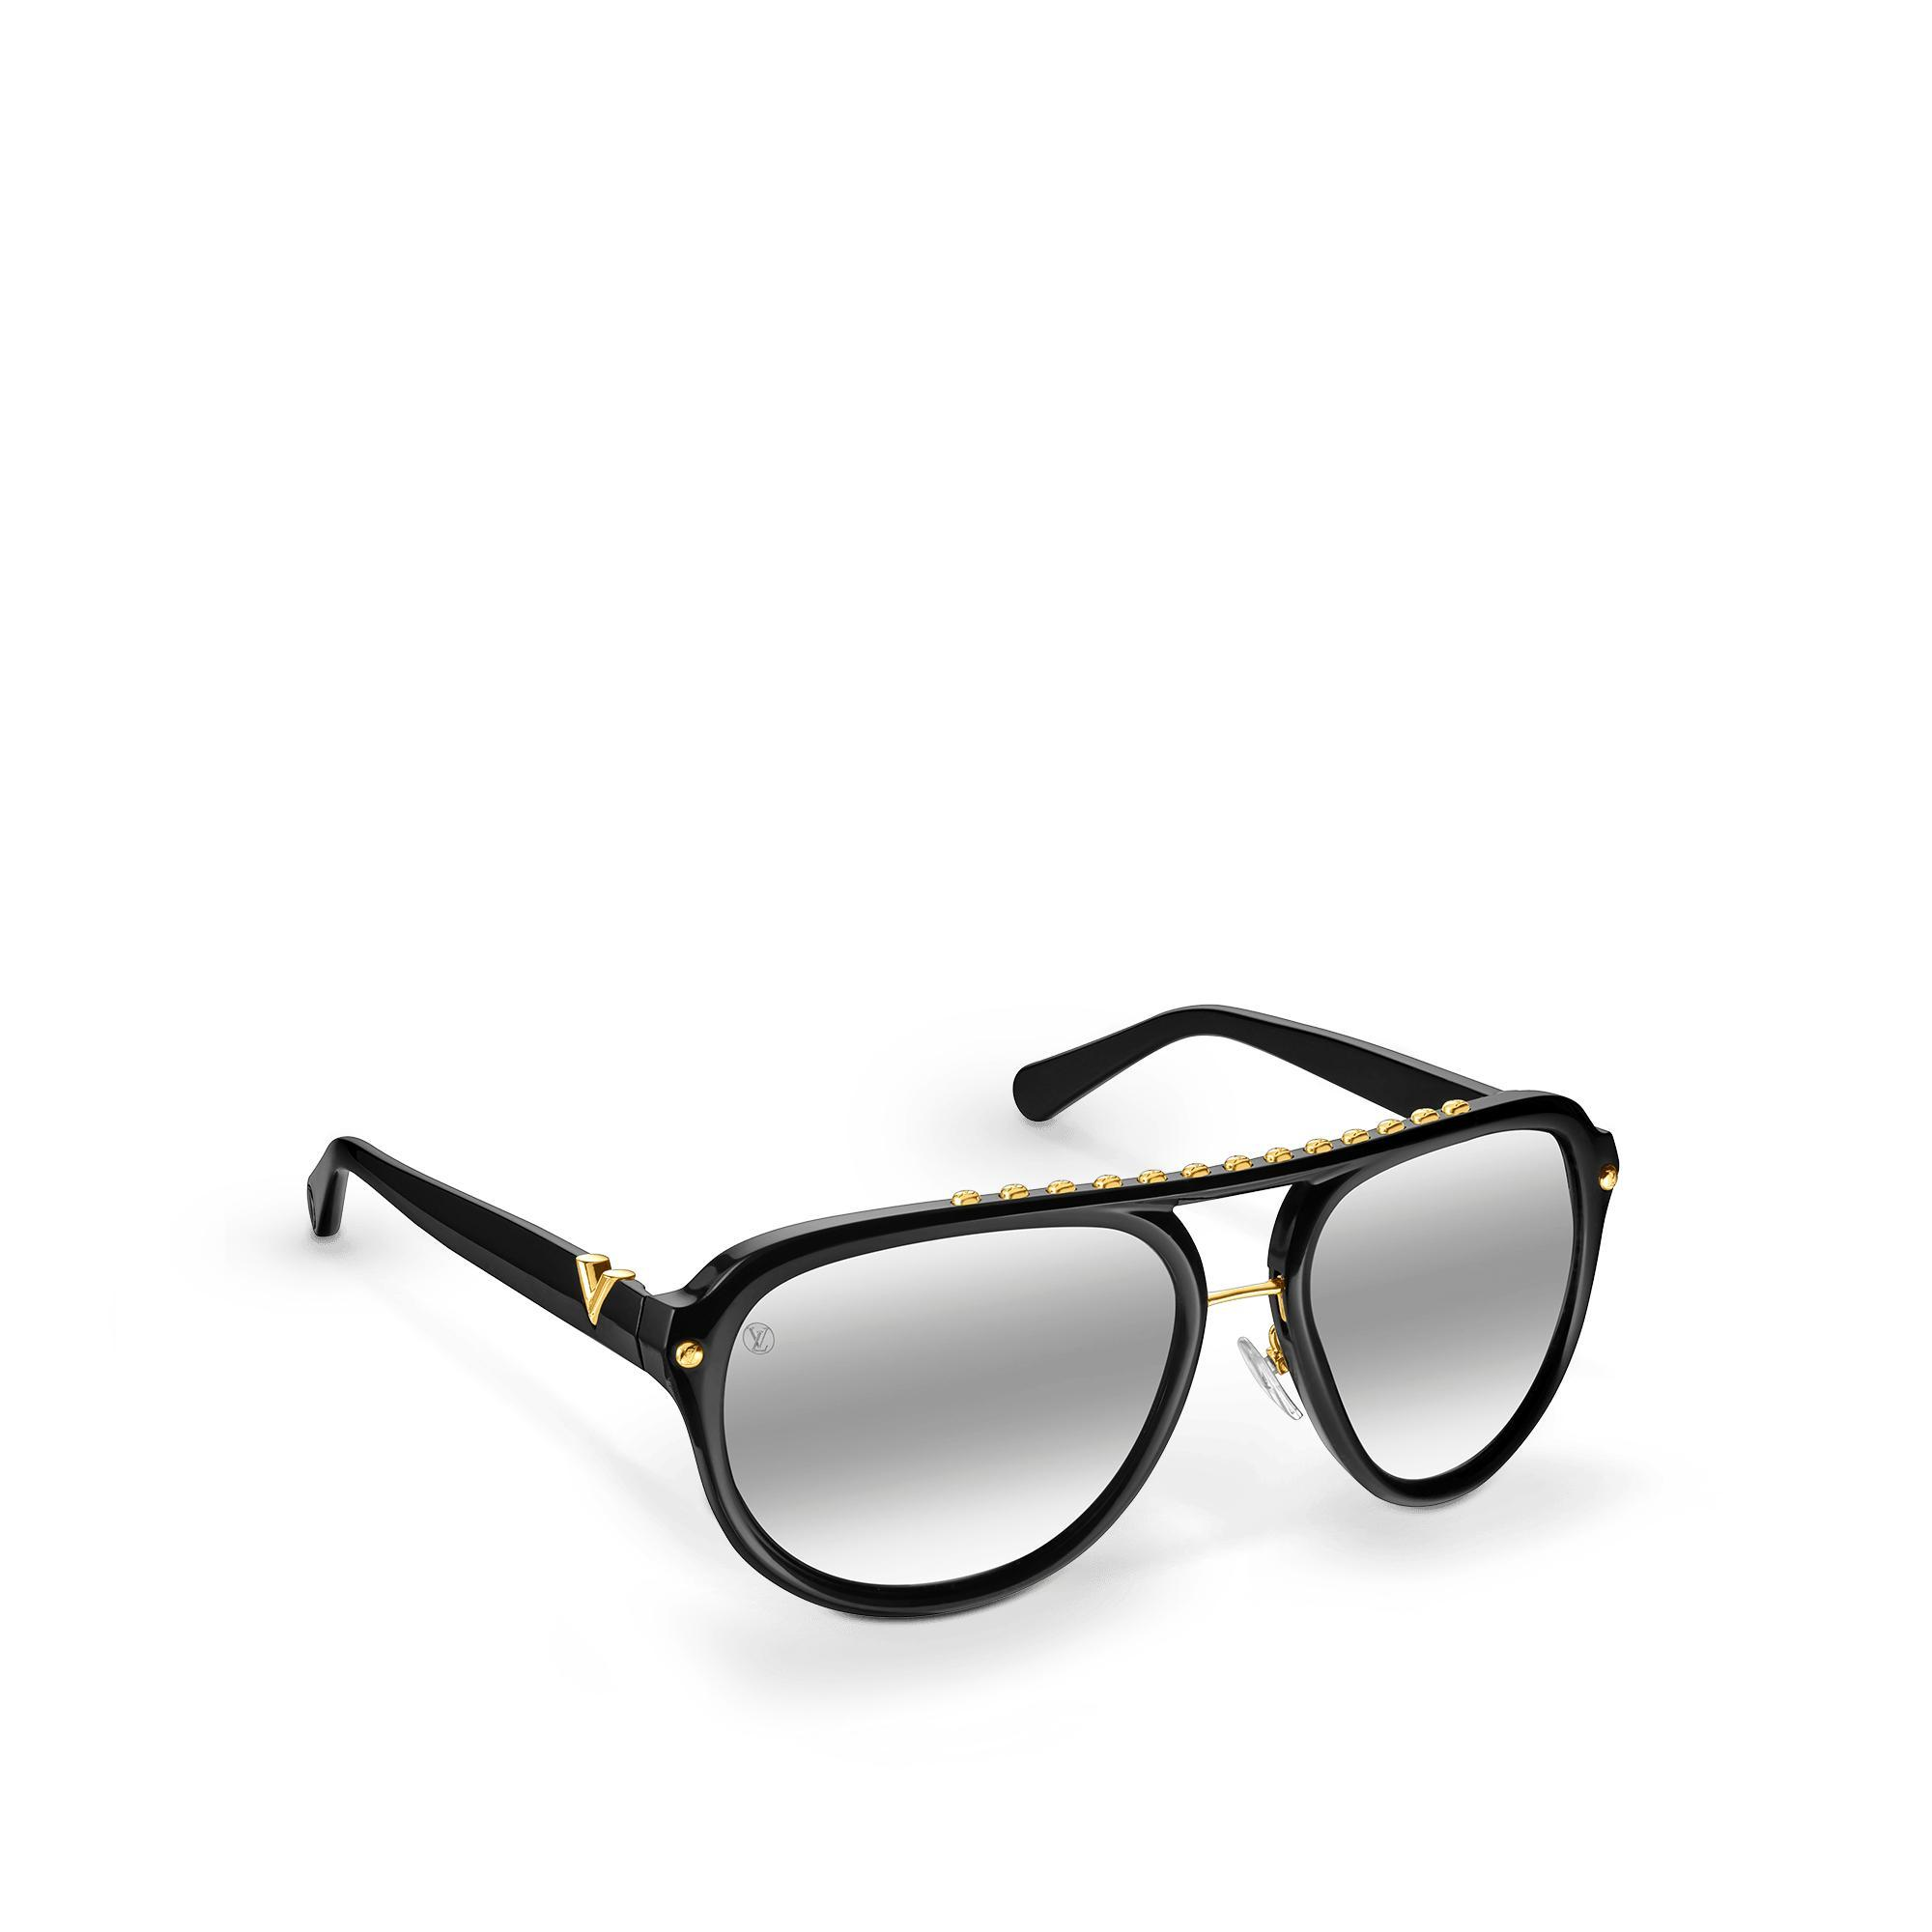 2c4e46b2dc Louis Vuitton Serpico Sunglasses